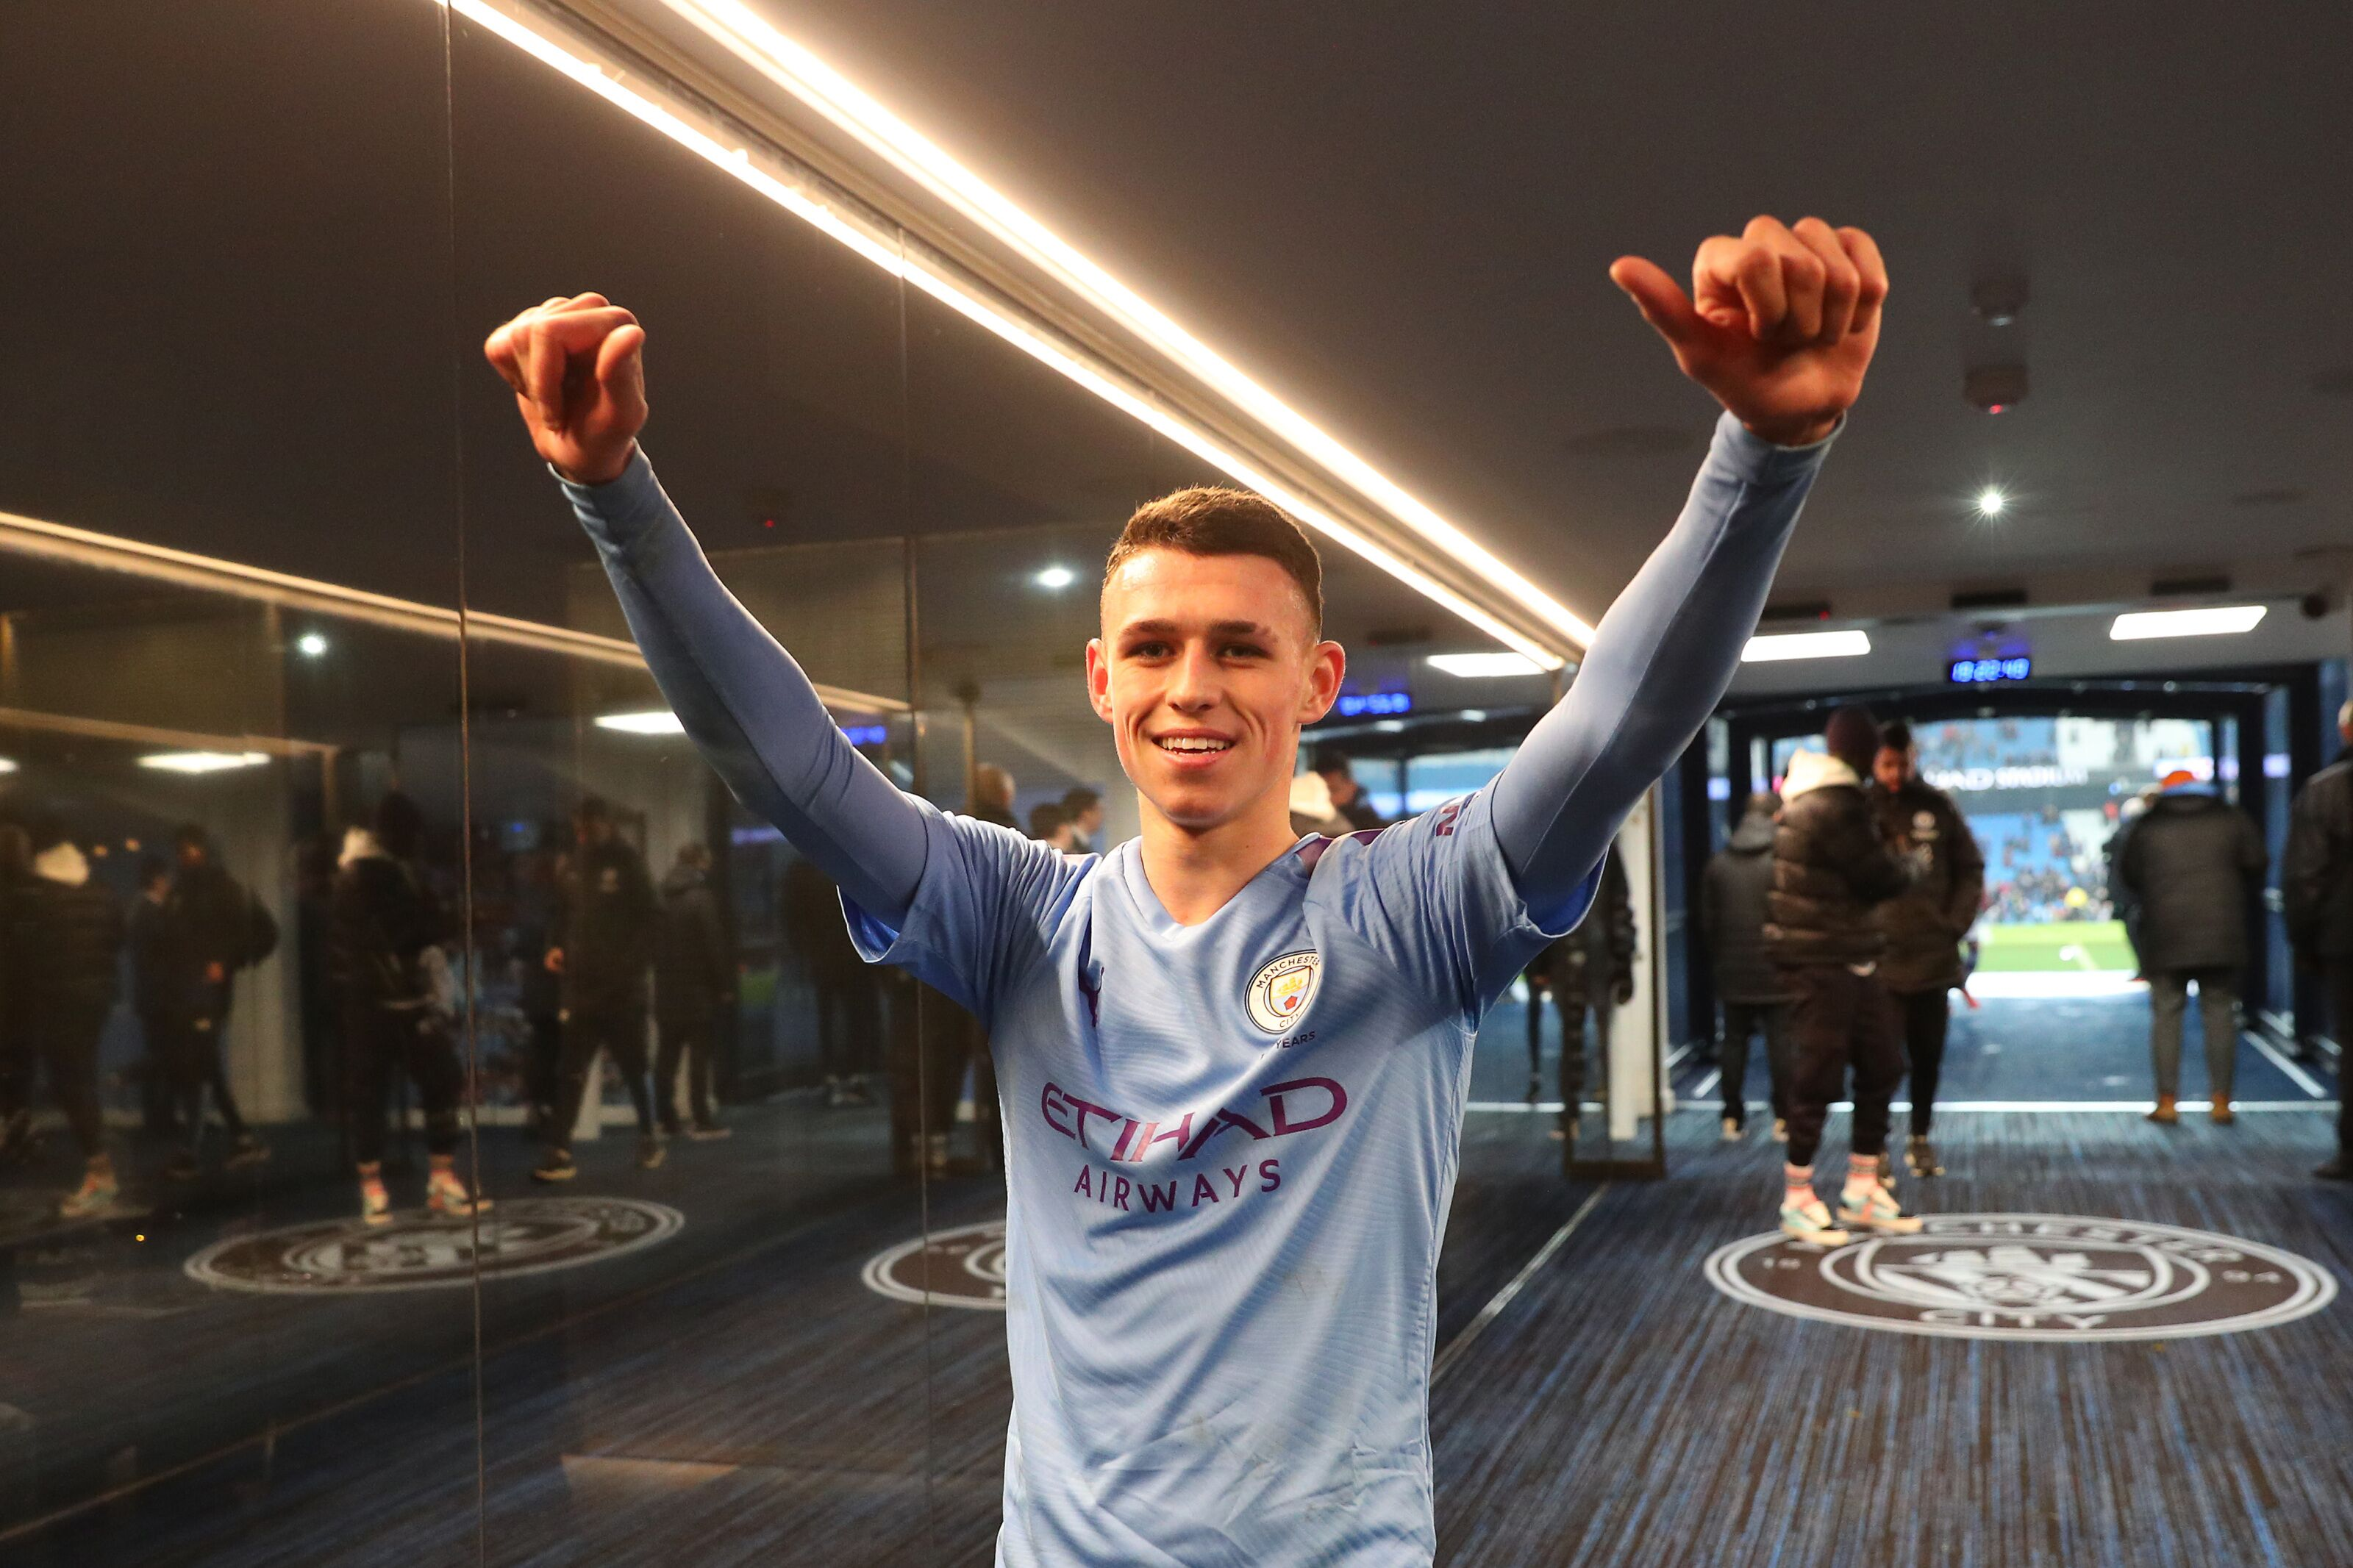 Manchester City starlet ready to take over from David Silva